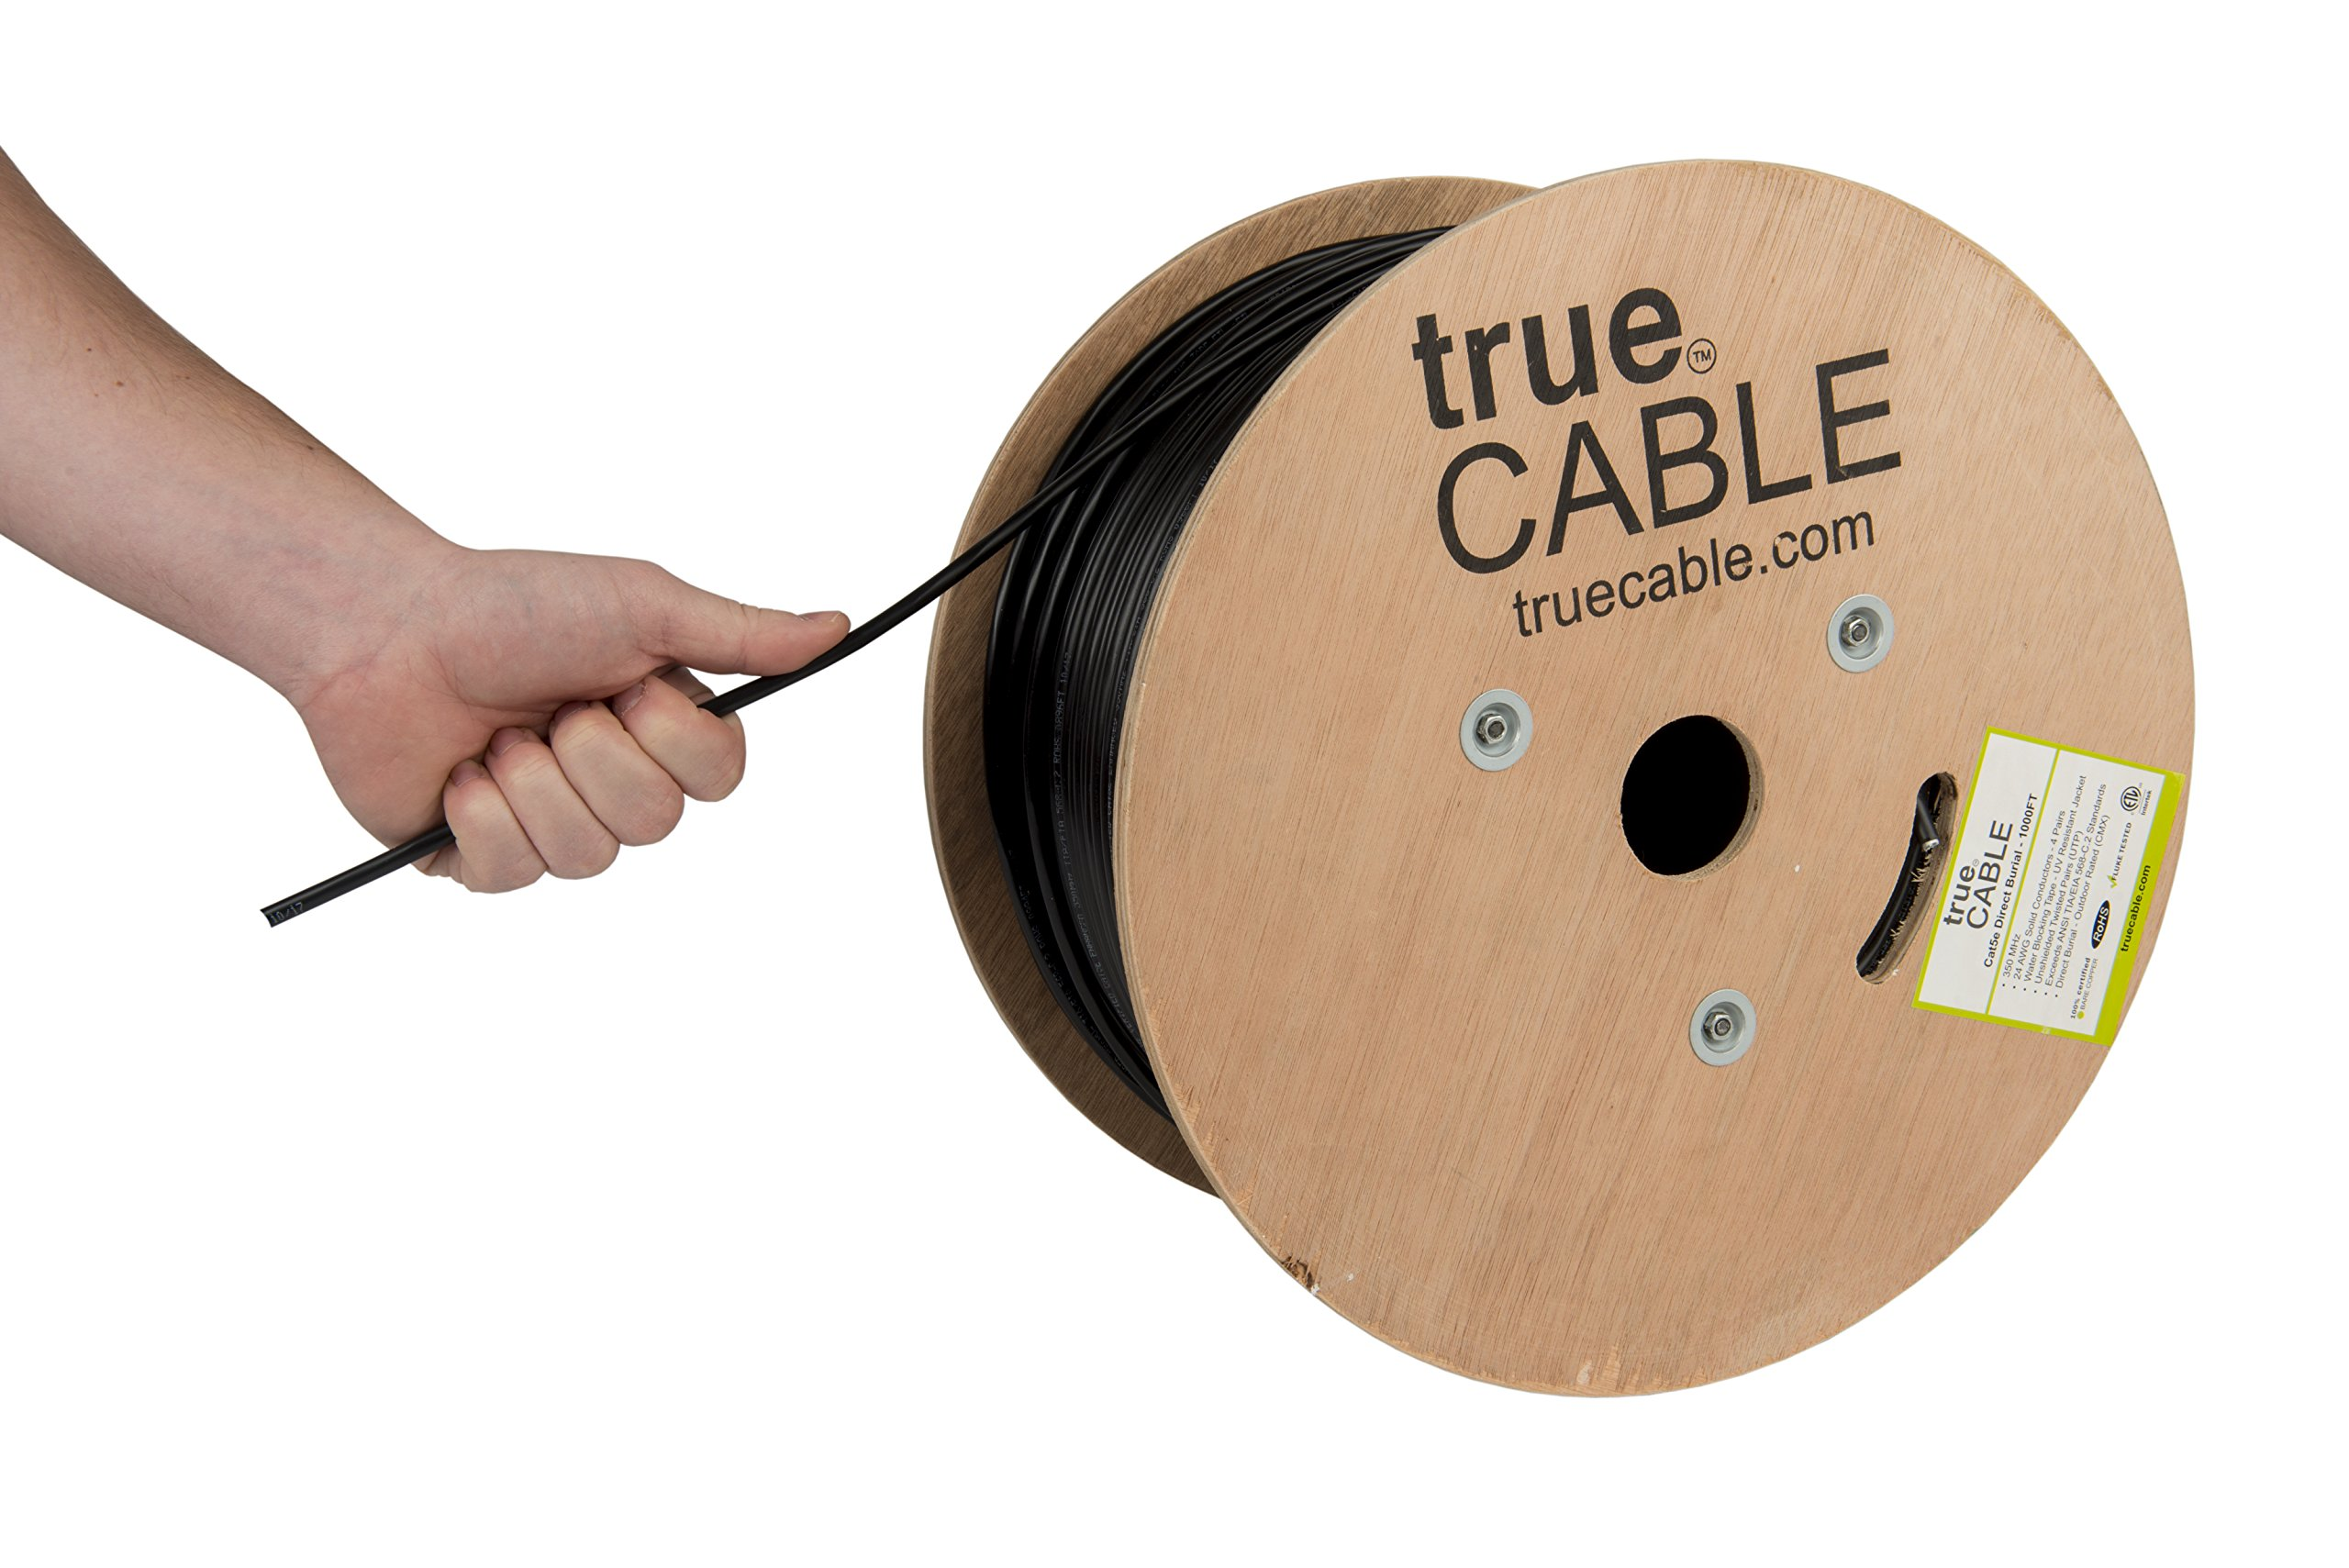 Cat5e Outdoor, 1000ft, Waterproof Direct Burial Rated CMX, Unshielded UTP, Solid Bare Copper Bulk Ethernet Cable, 350MHz, ETL Listed, Black, trueCABLE